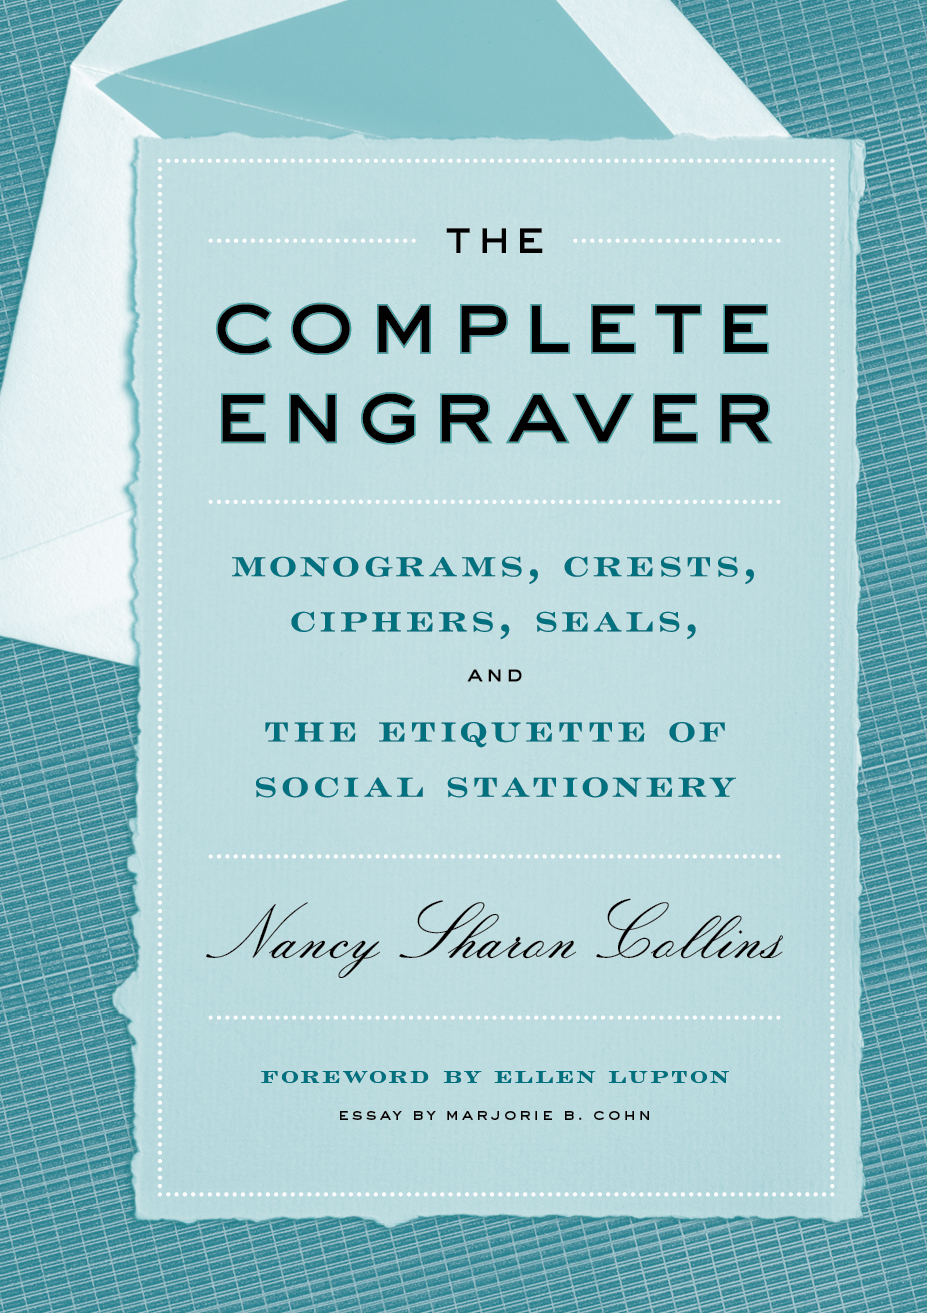 The Complete Engraver Monograms, Crests, Ciphers, Seals, and the Etiquette of Social Stationery